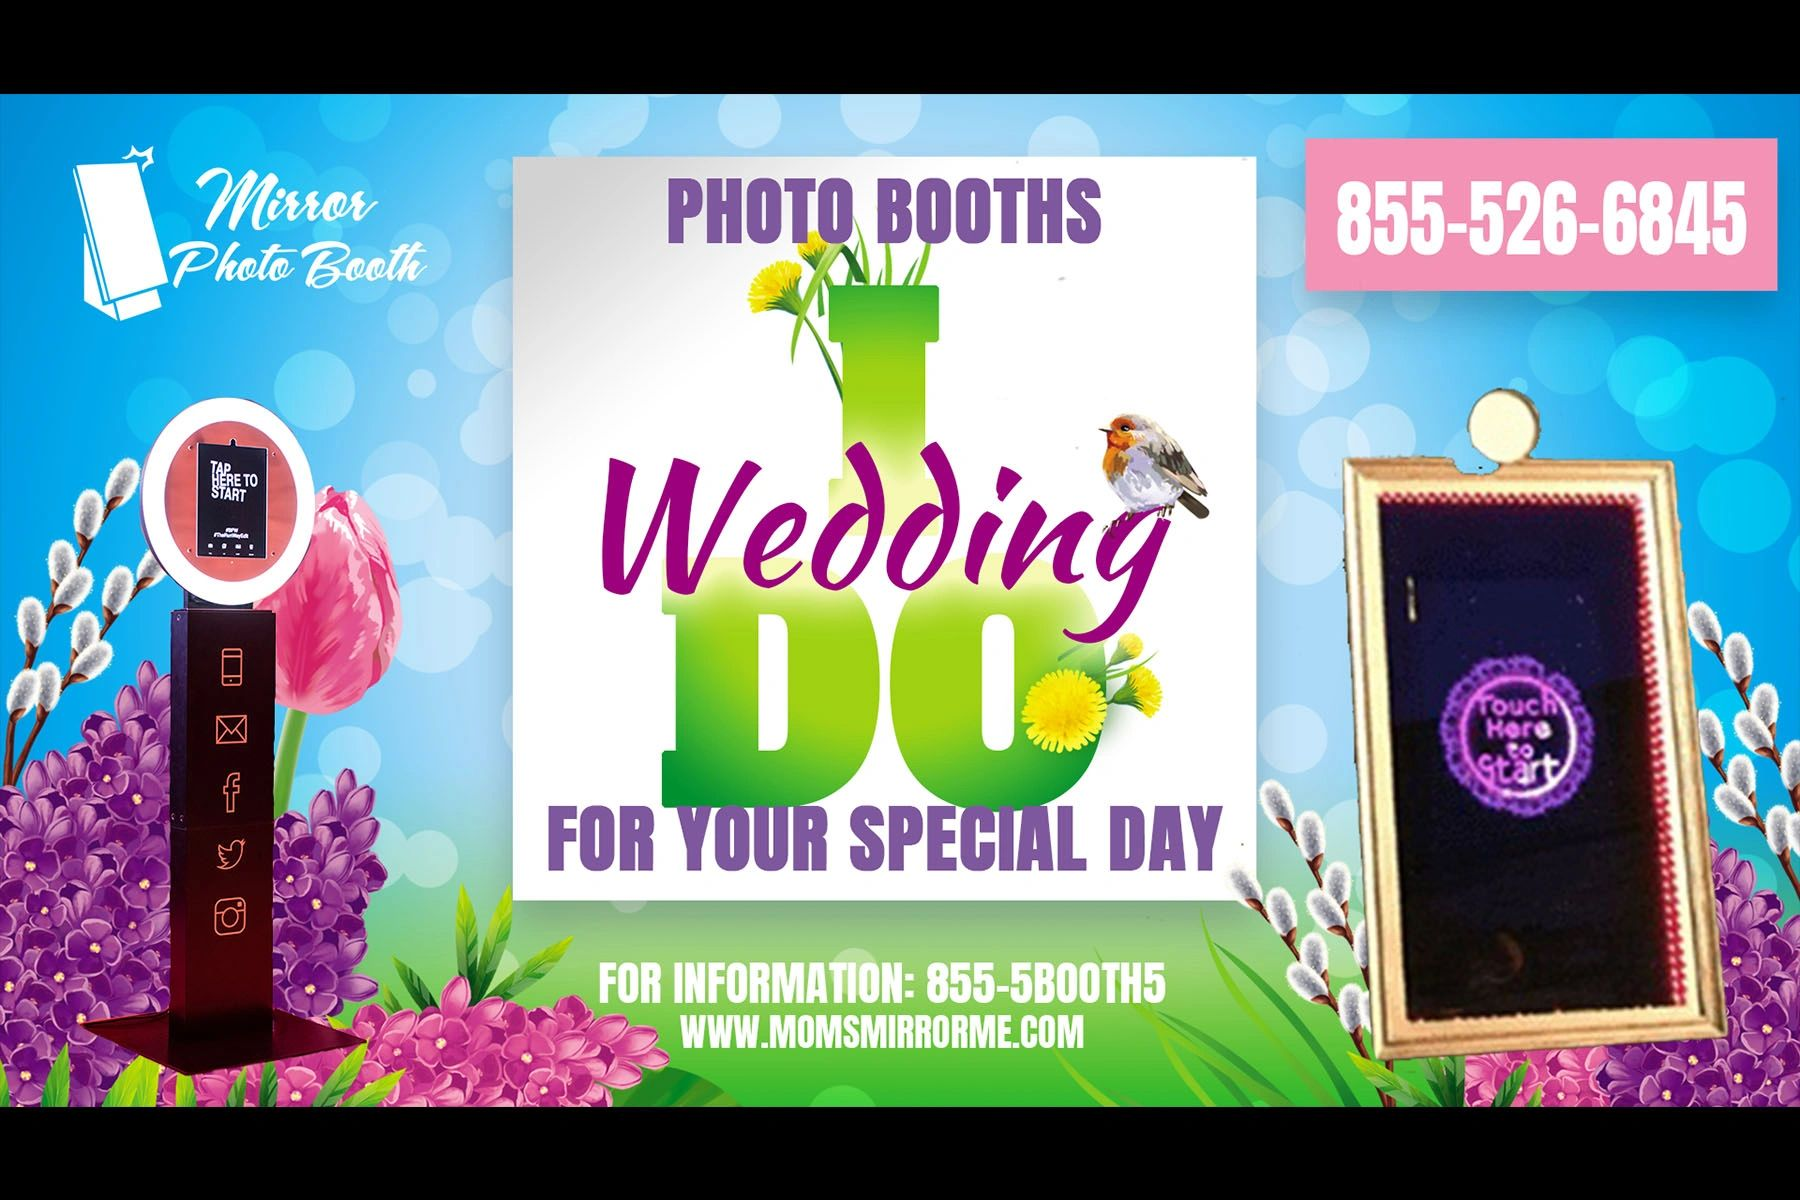 photo booths for every occasion. Mobi Booth and Mirror Photo Booth